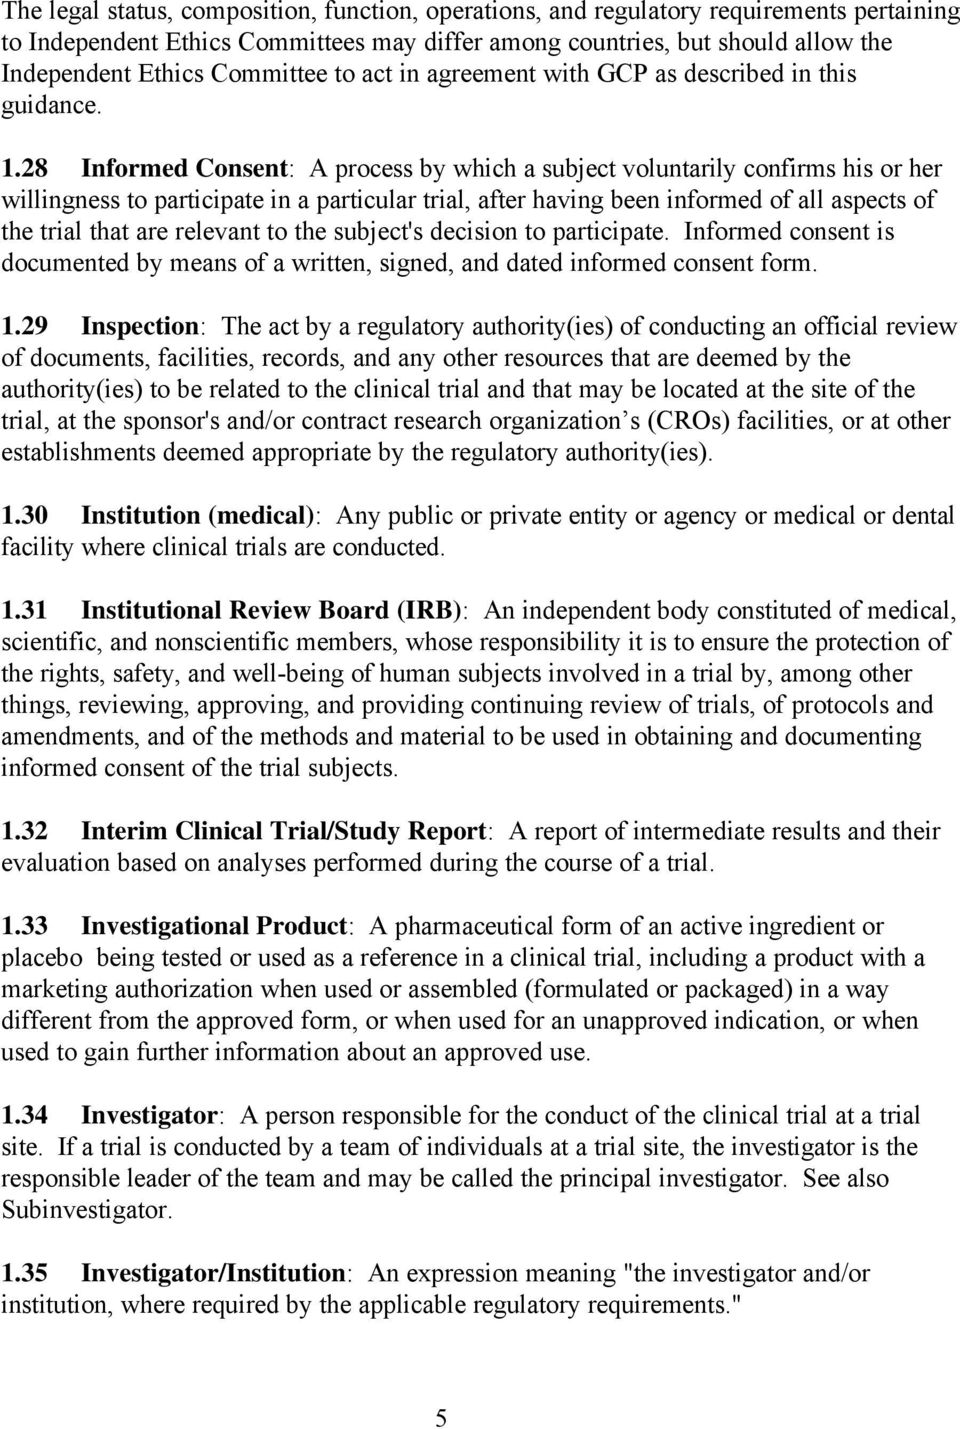 28 Informed Consent: A process by which a subject voluntarily confirms his or her willingness to participate in a particular trial, after having been informed of all aspects of the trial that are